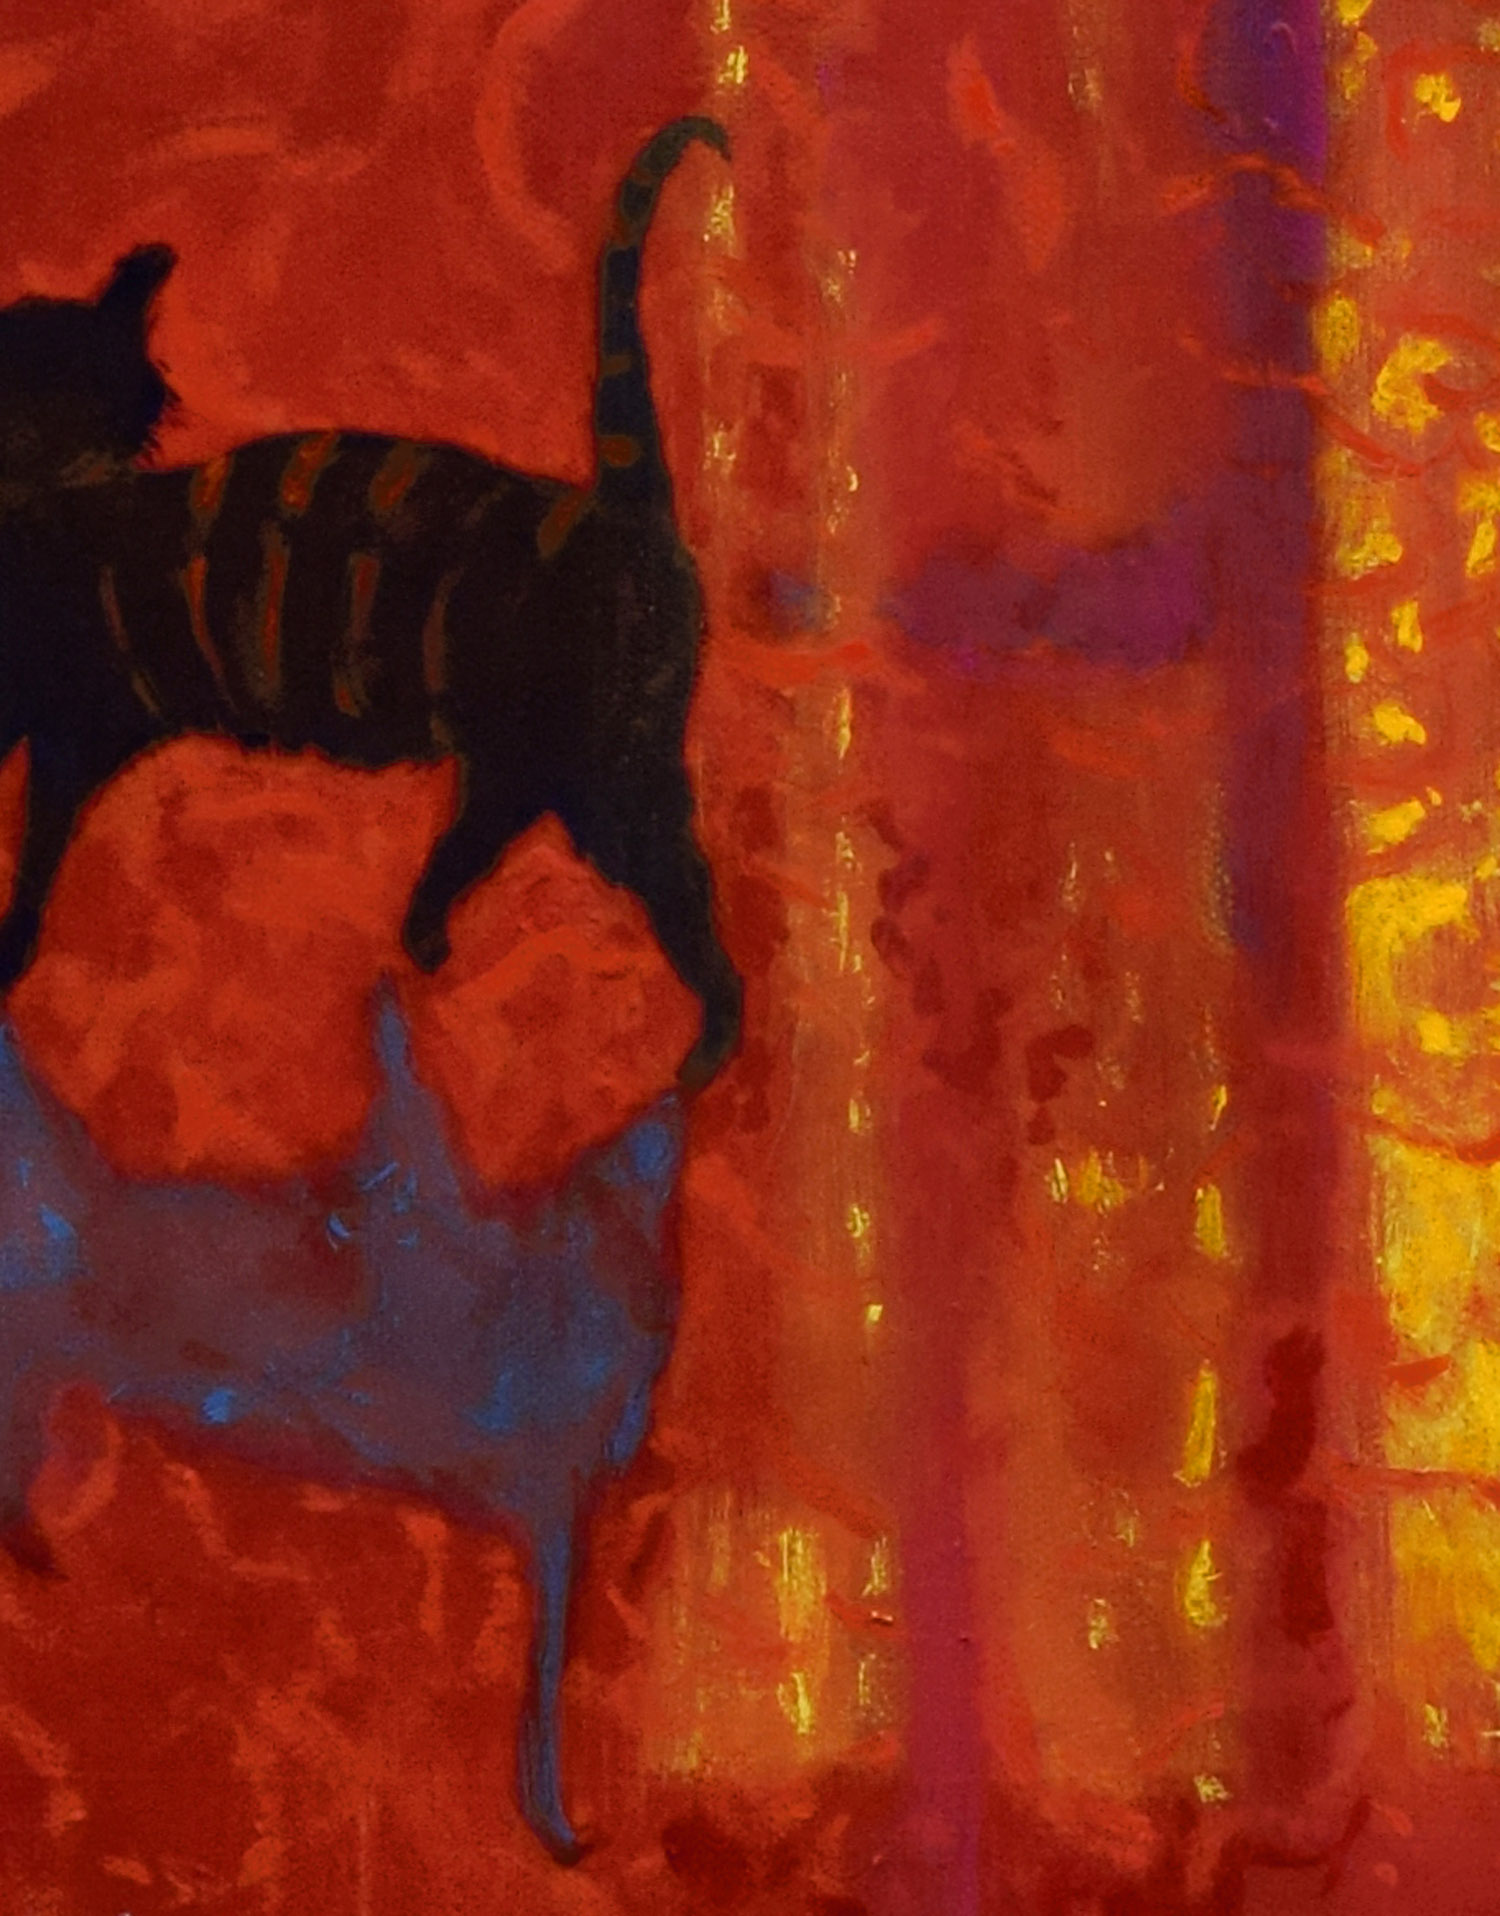 Detail of Cat from Summer Evening, Vence by John O'Grady